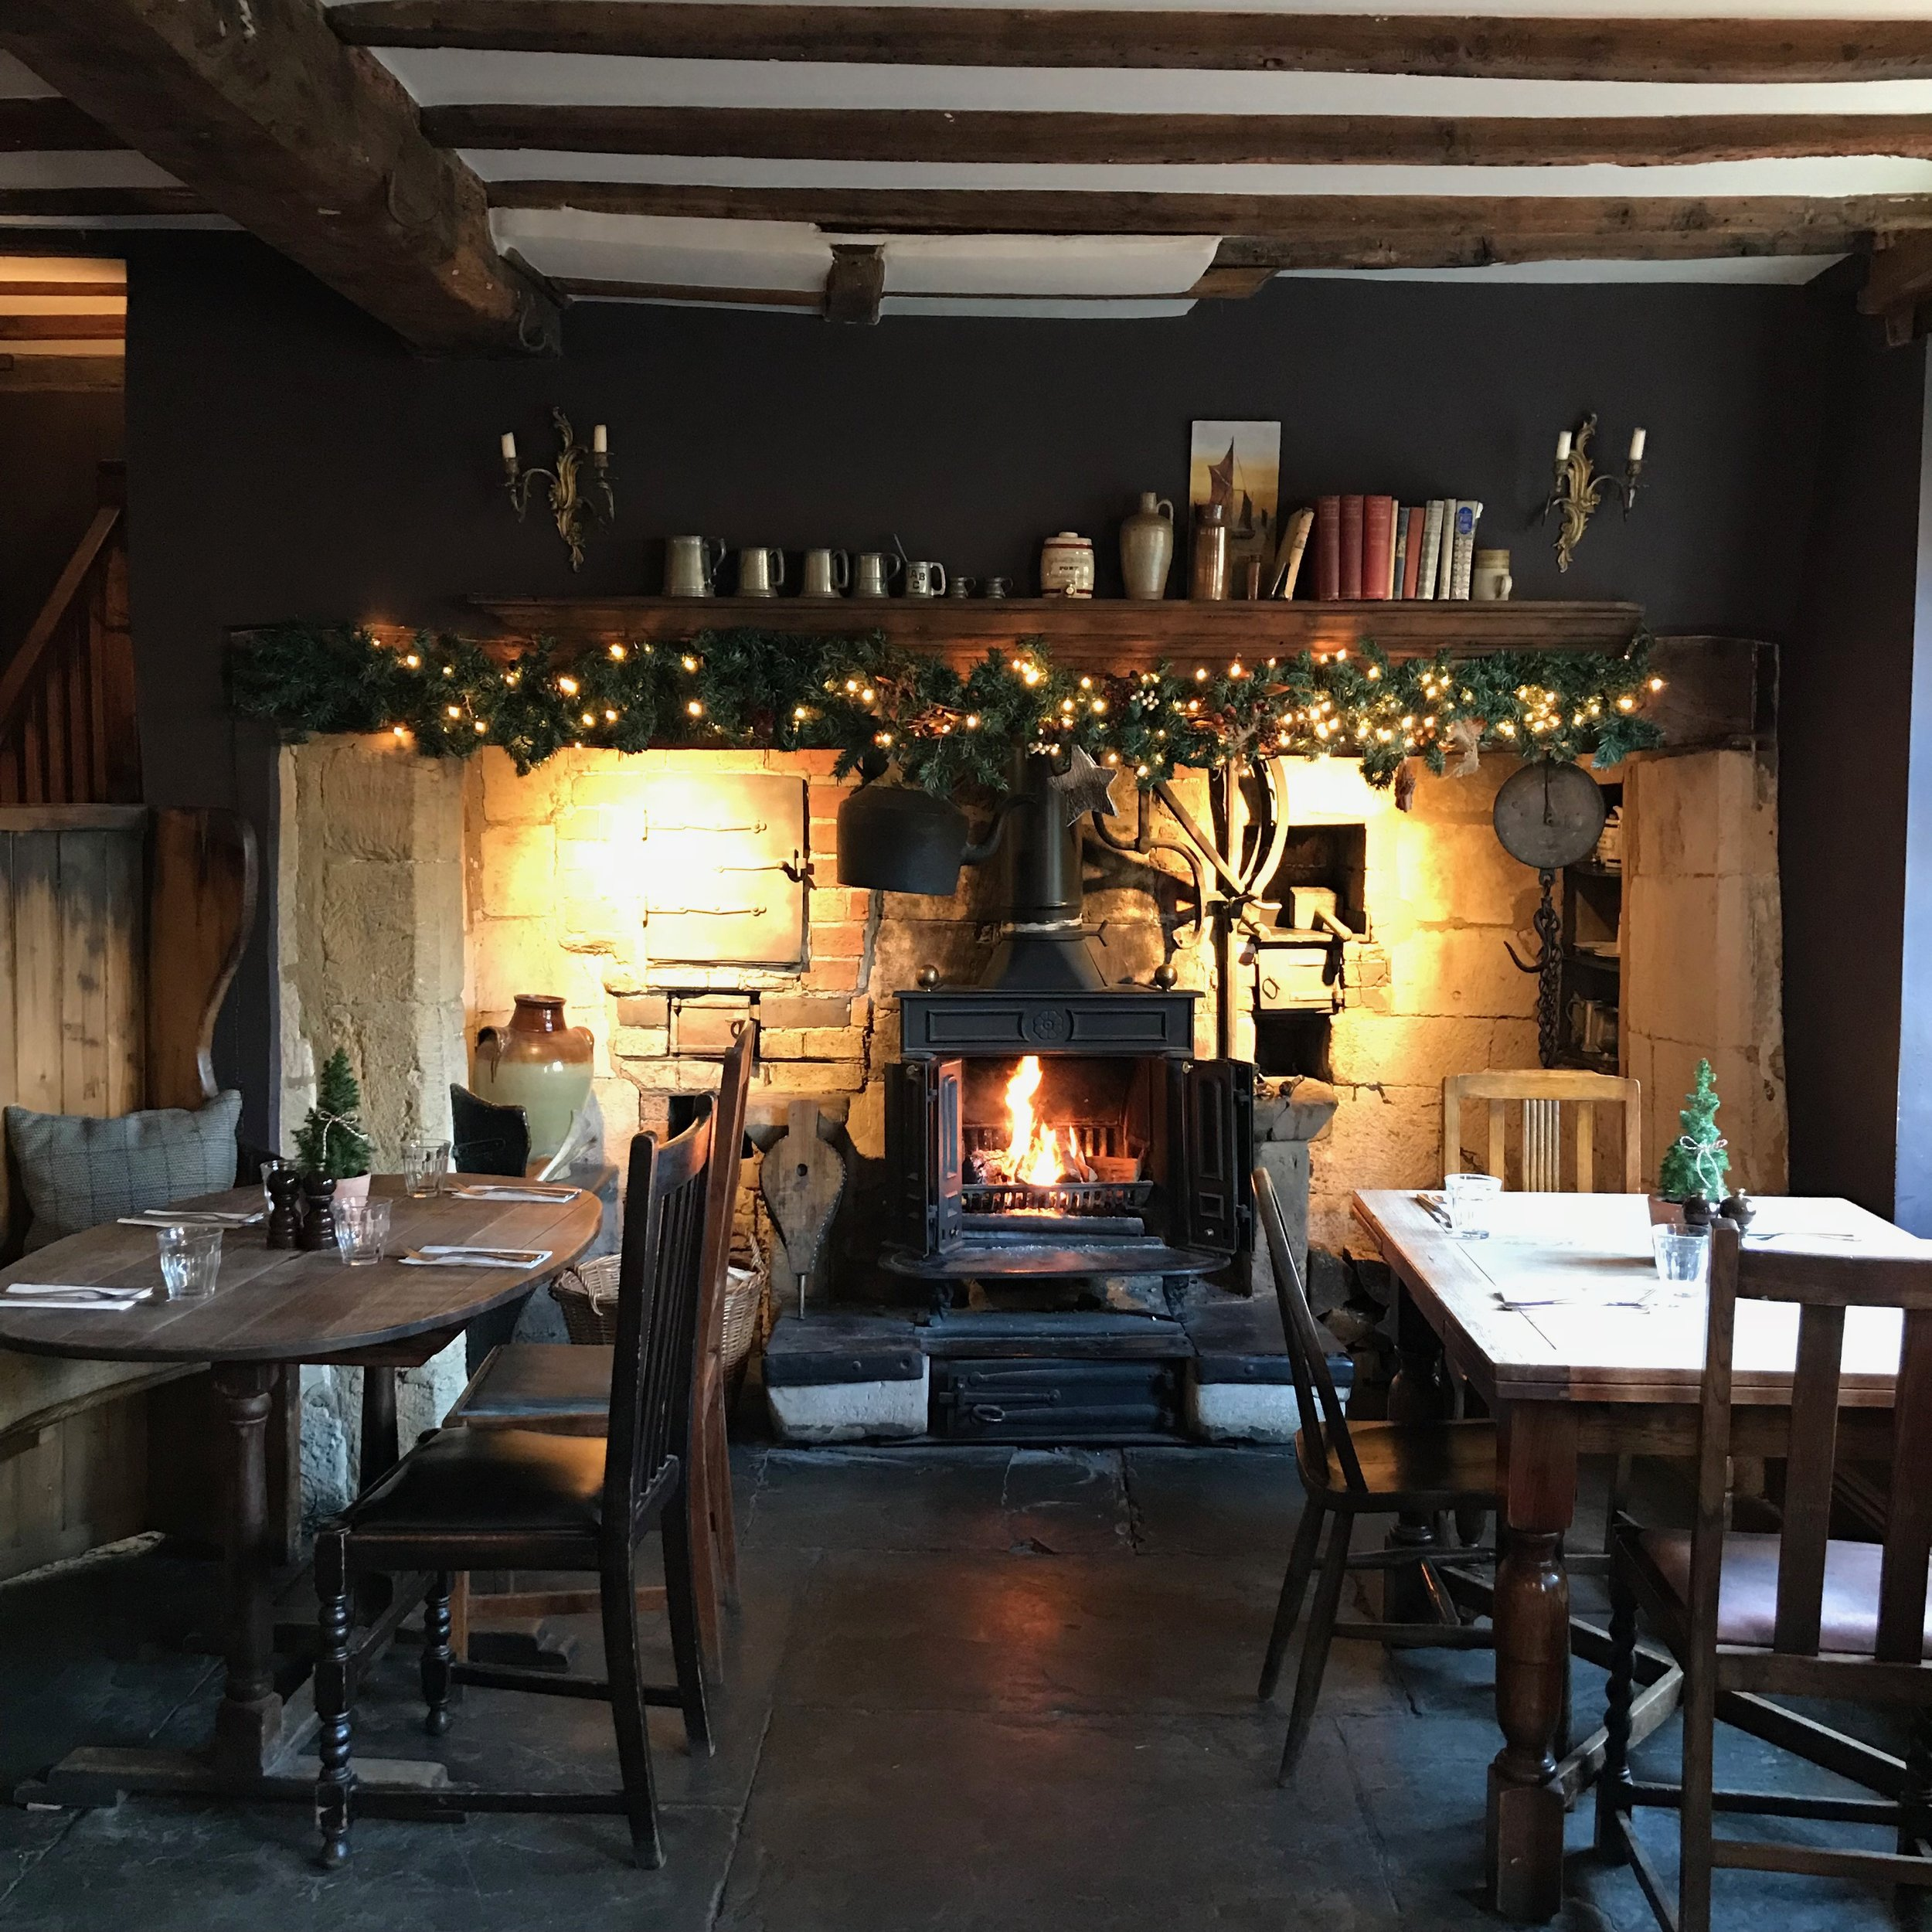 Fireplace in the Bakers dining room at The Ebrington Arms, once of the Cotswolds' finest